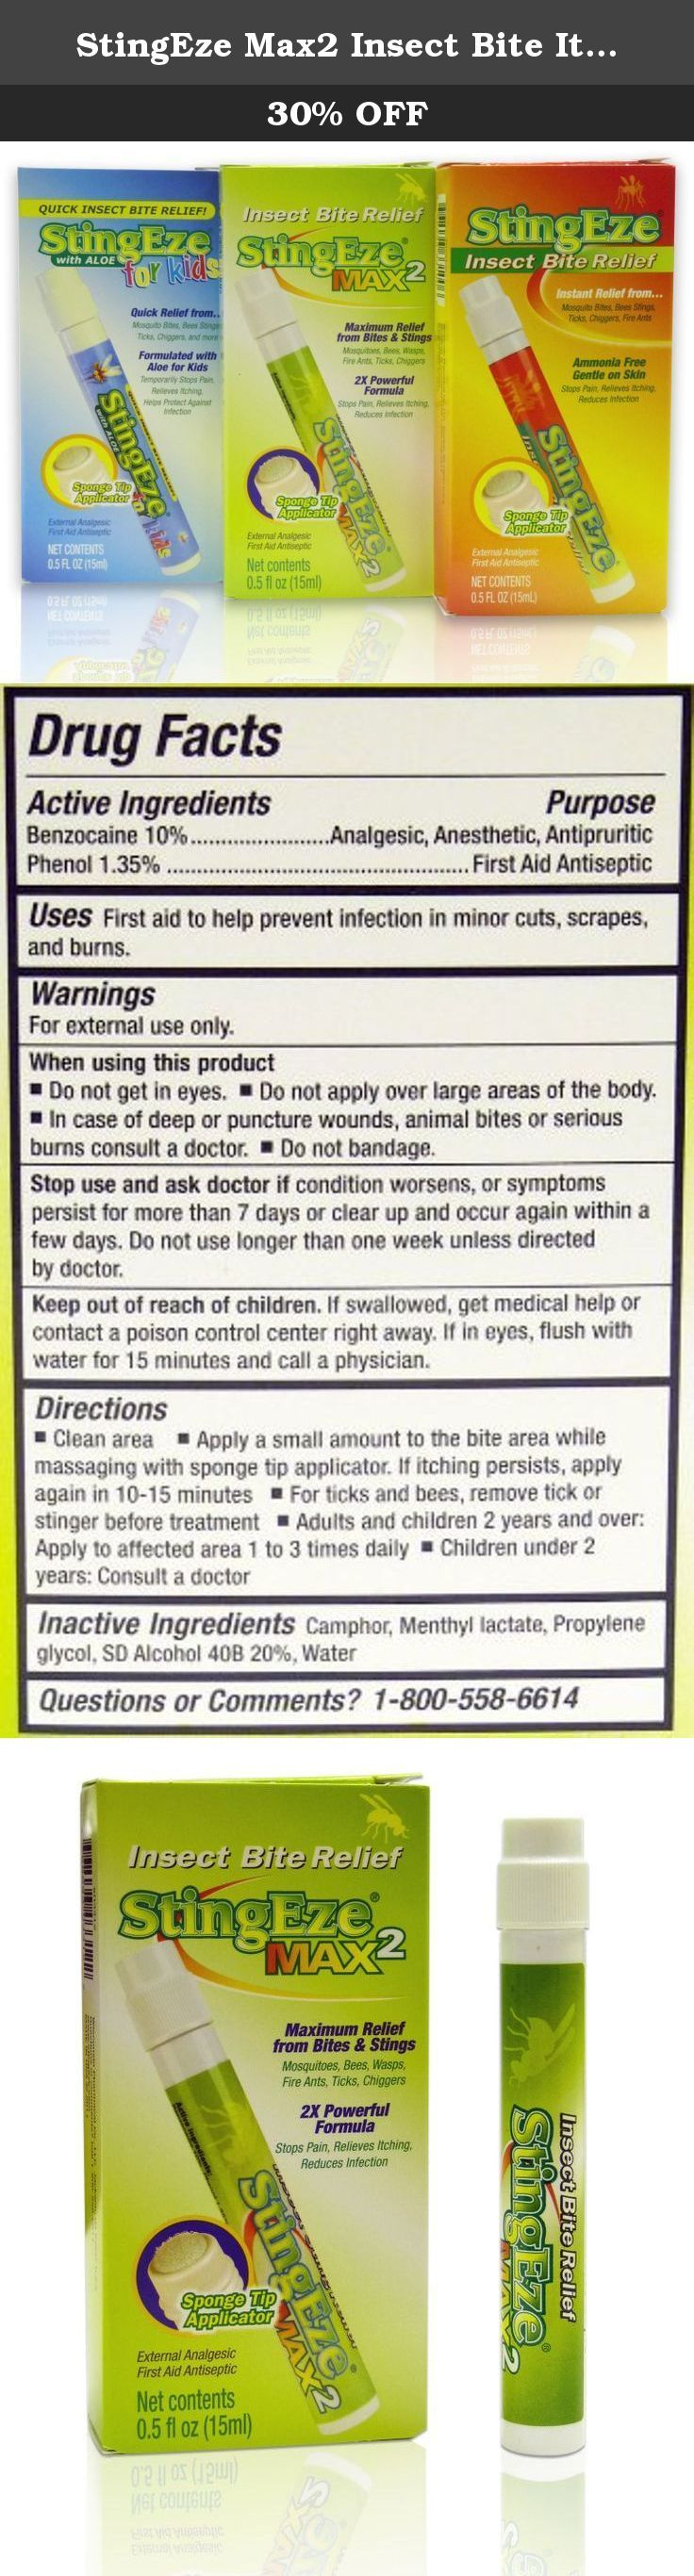 StingEze Max2 Insect Bite Itch Relief Dauber, 0.5-Ounce. Our StingEze Max Insect Bite Relief Dauber offers a triple-action formula that provides fast, effective relief from the pain, itching and infection associated with insect bites and stings. The primary active ingredient in StingEze is the pain reliever Benzocaine, a mild yet effective alternative to ammonia. Ammonia, even in low concentrations, can irritate your eyes, cause your skin to burn or swell, dry out your skin and promote…